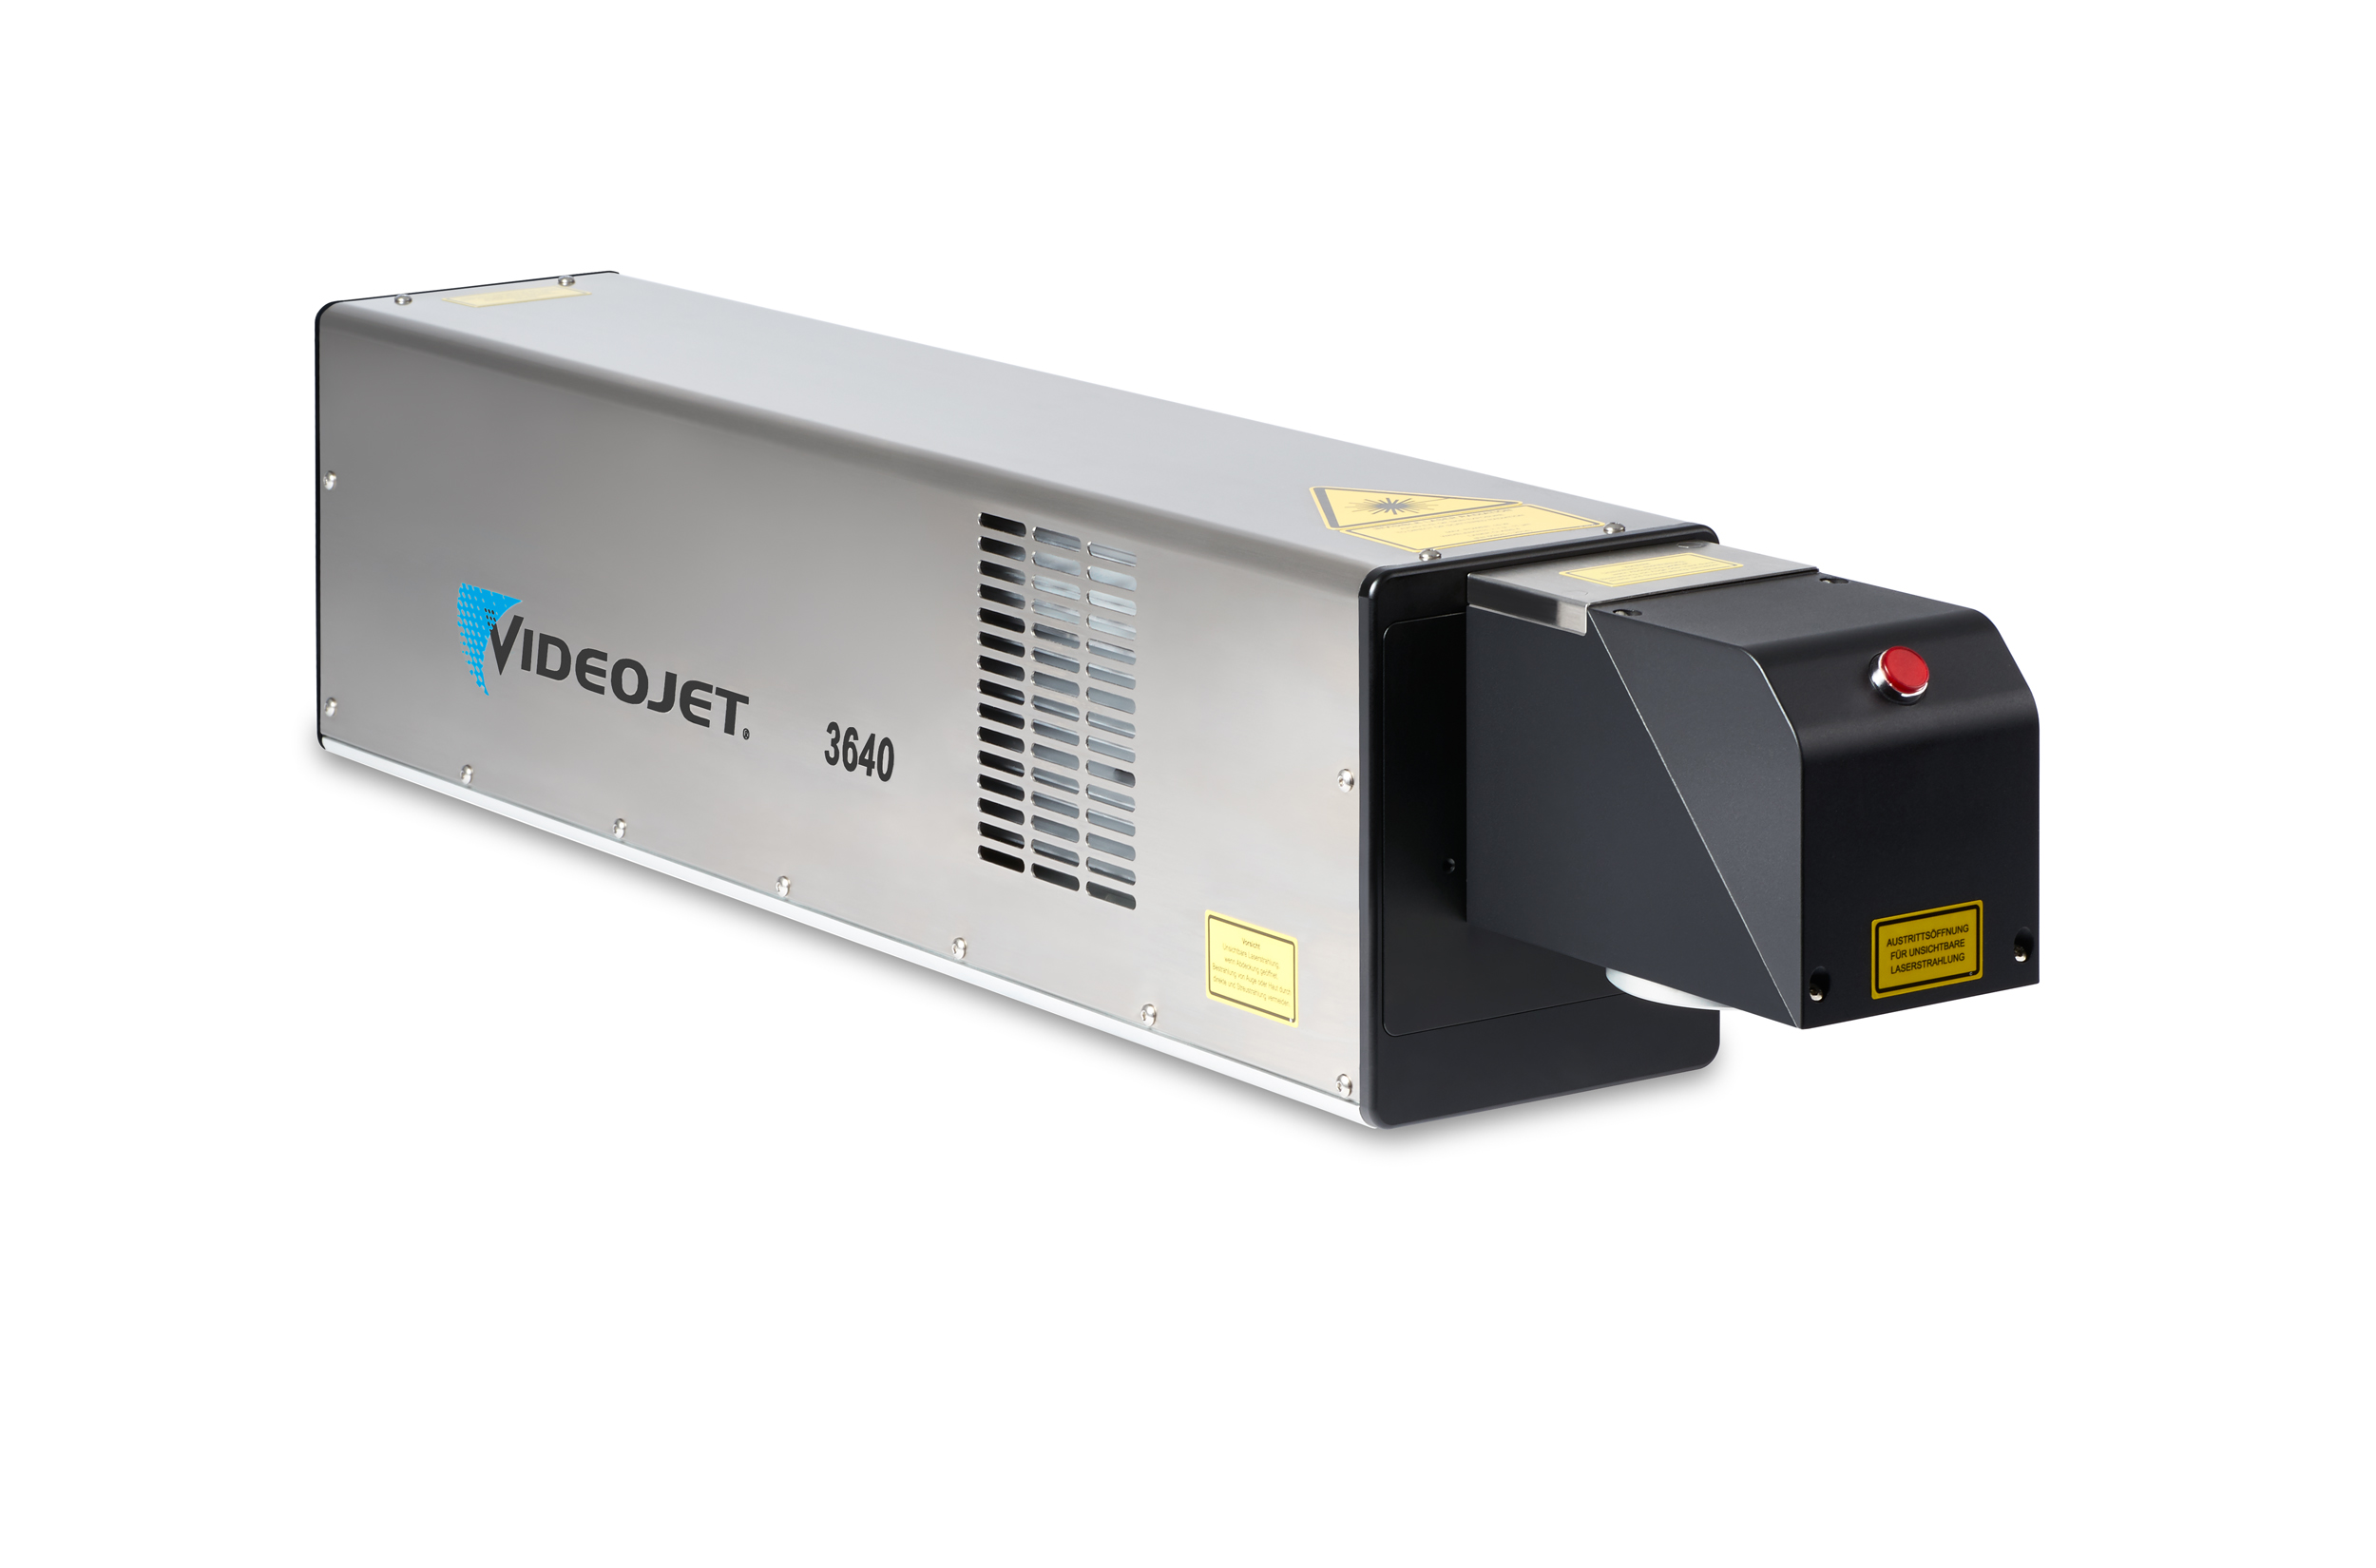 Videojet 3640 Laser Marking Machine